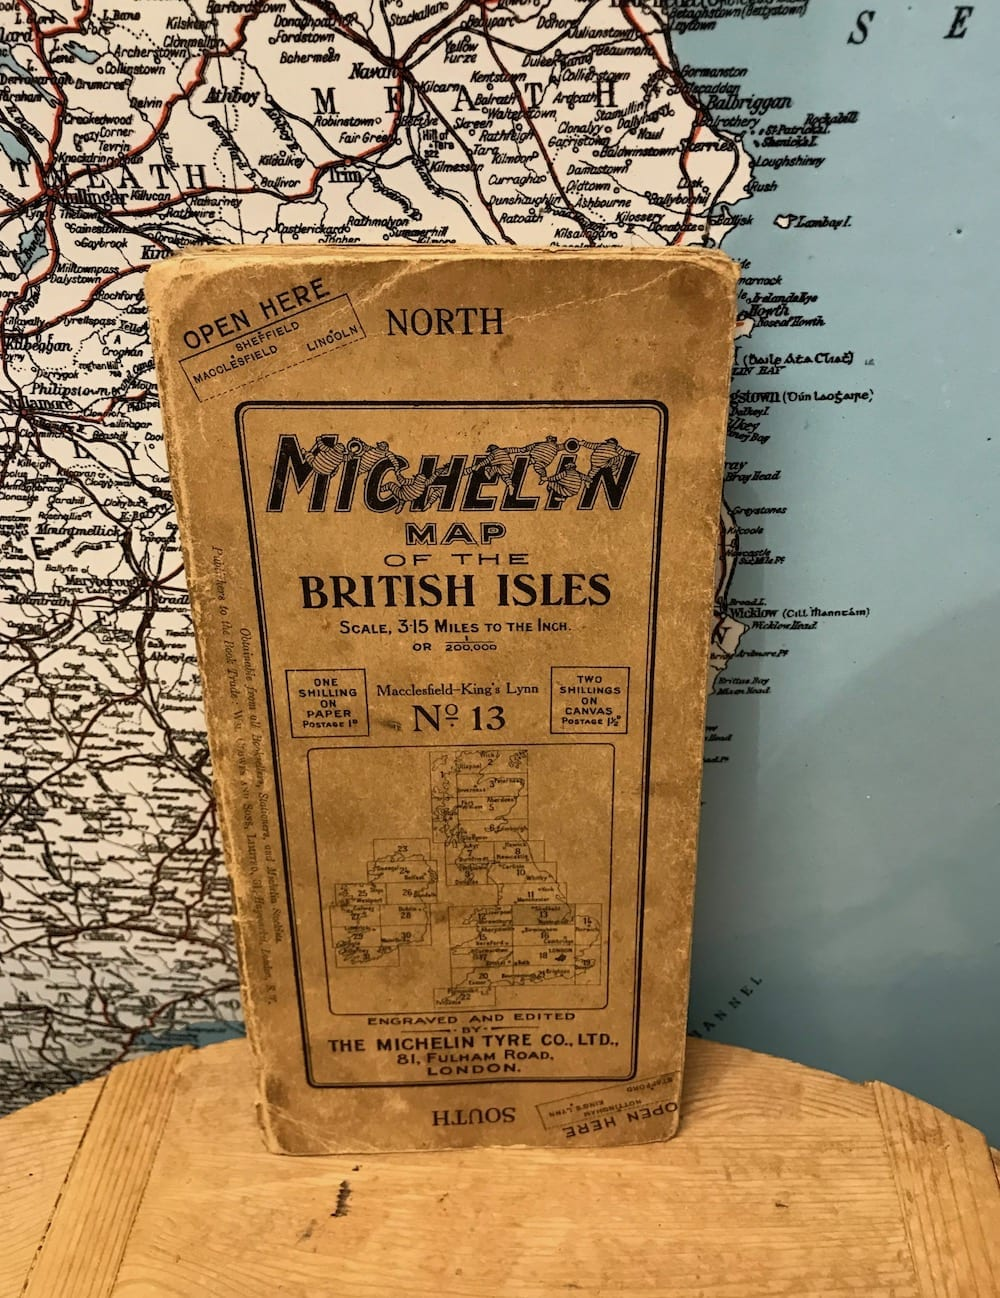 MICHELIN MAPS OF THE BRITISH ISLES No.13. - Vintage Motoring UK